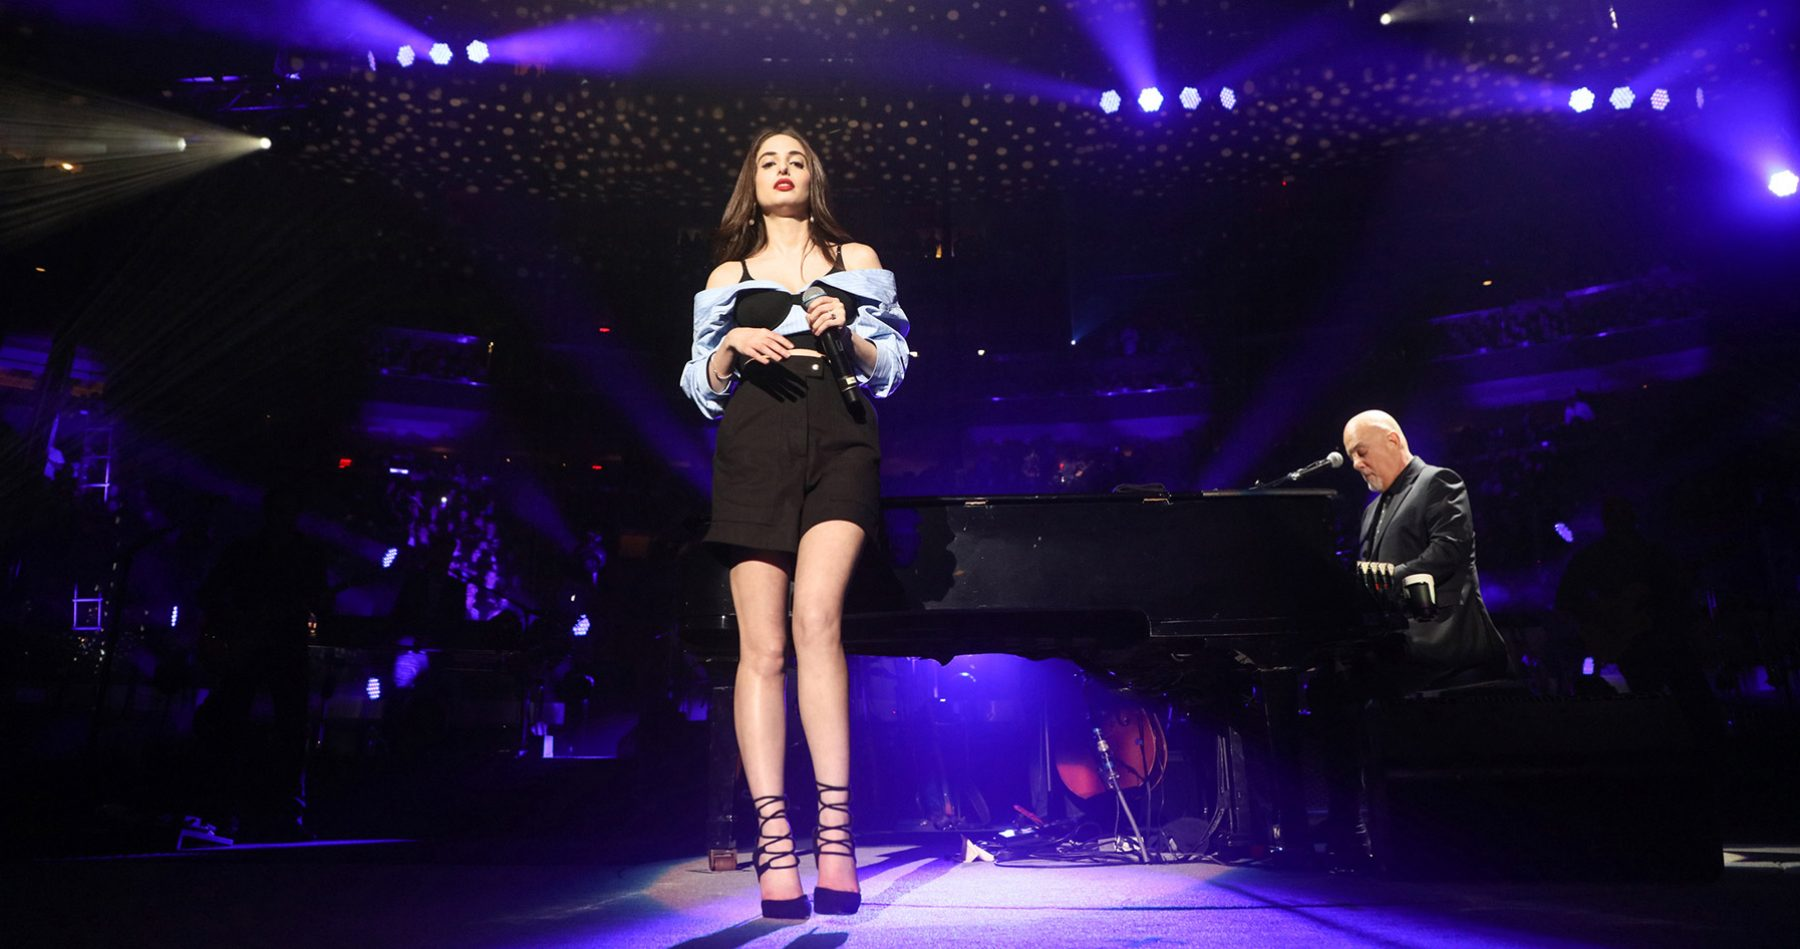 Alexa Ray Joel performs Baby Grand with father Billy Joel during his concert at Madison Square Garden New York, NY June 2, 2018